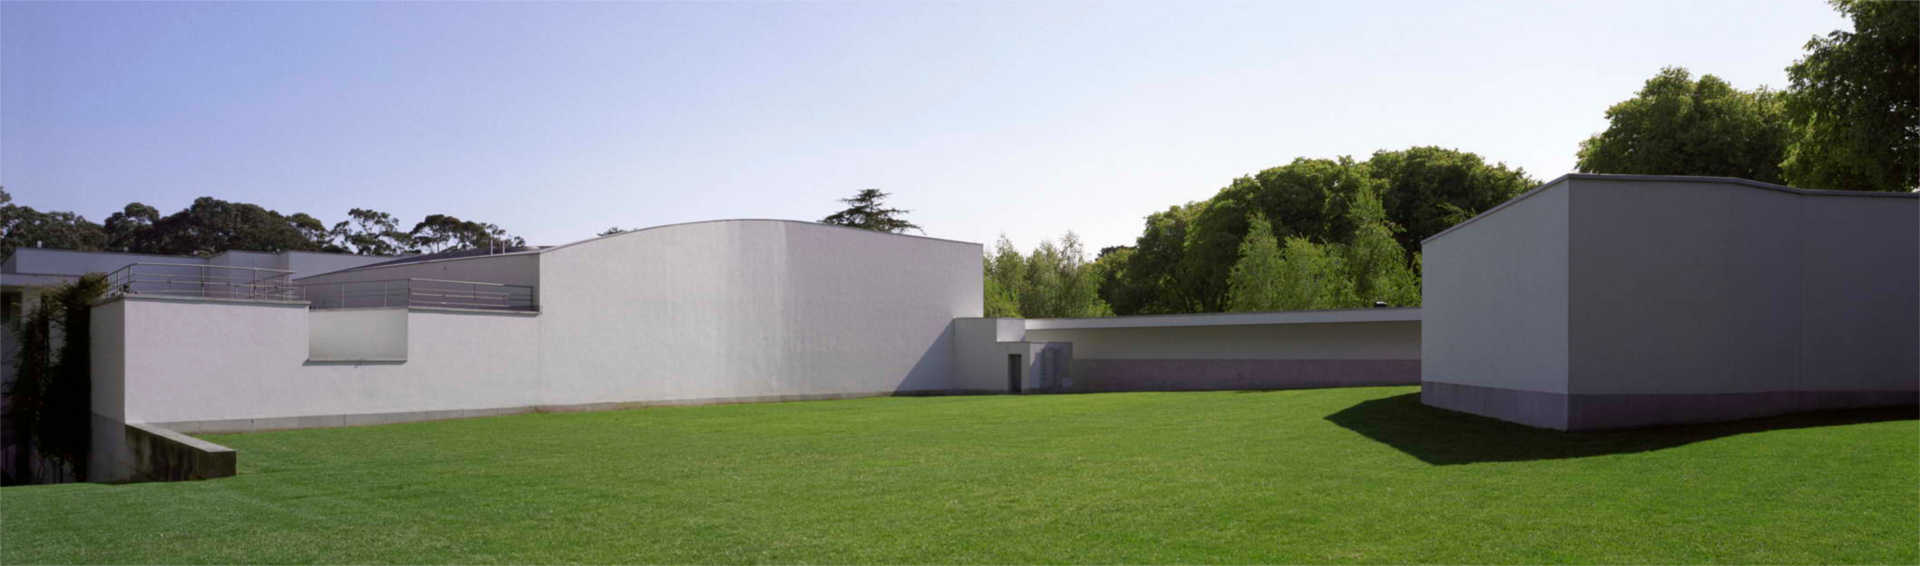 Serralves Foundation - image 3